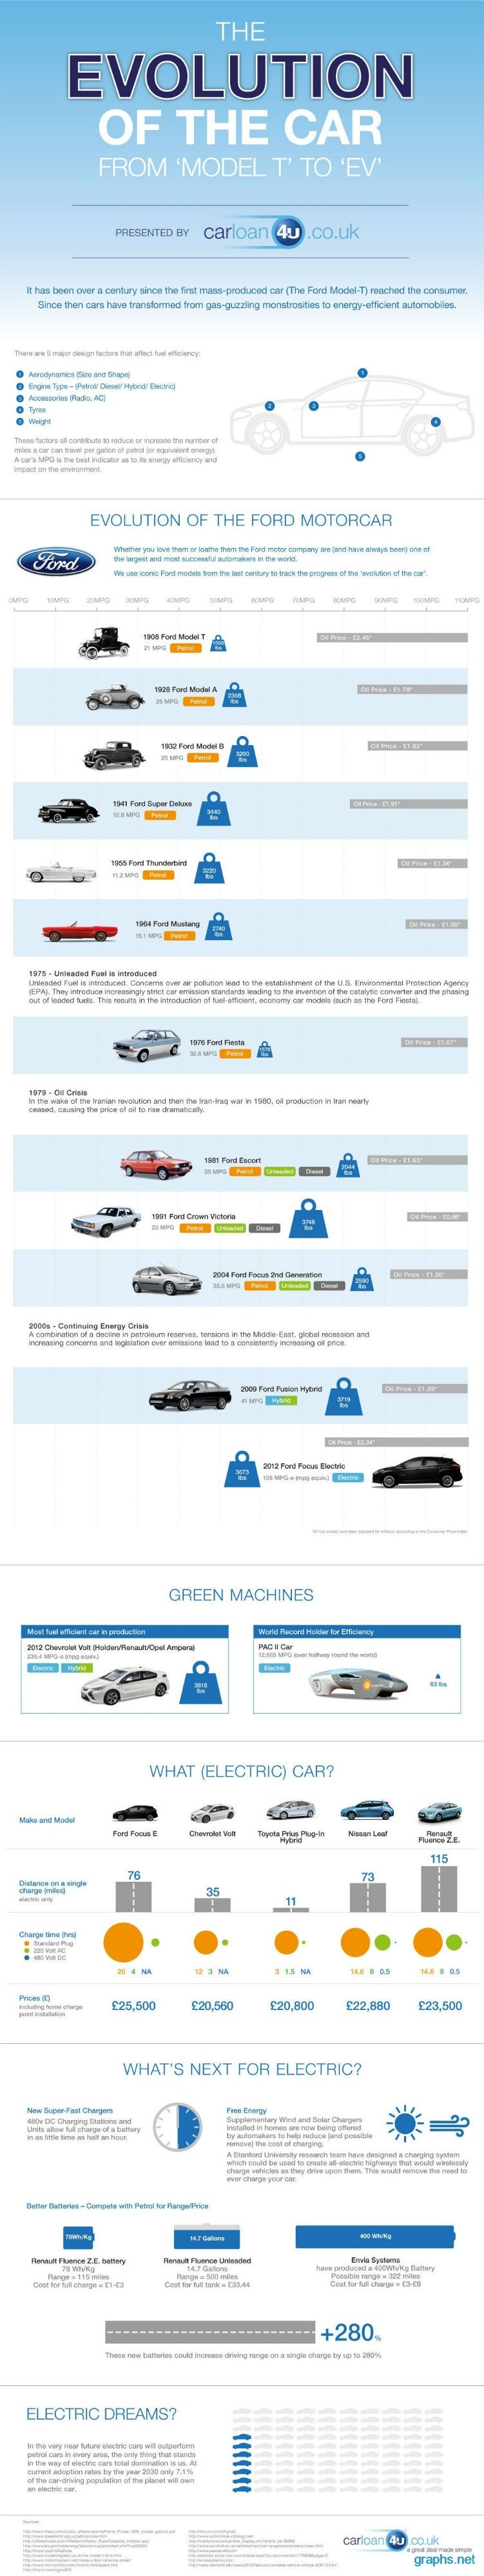 Evolution of The Car Industry